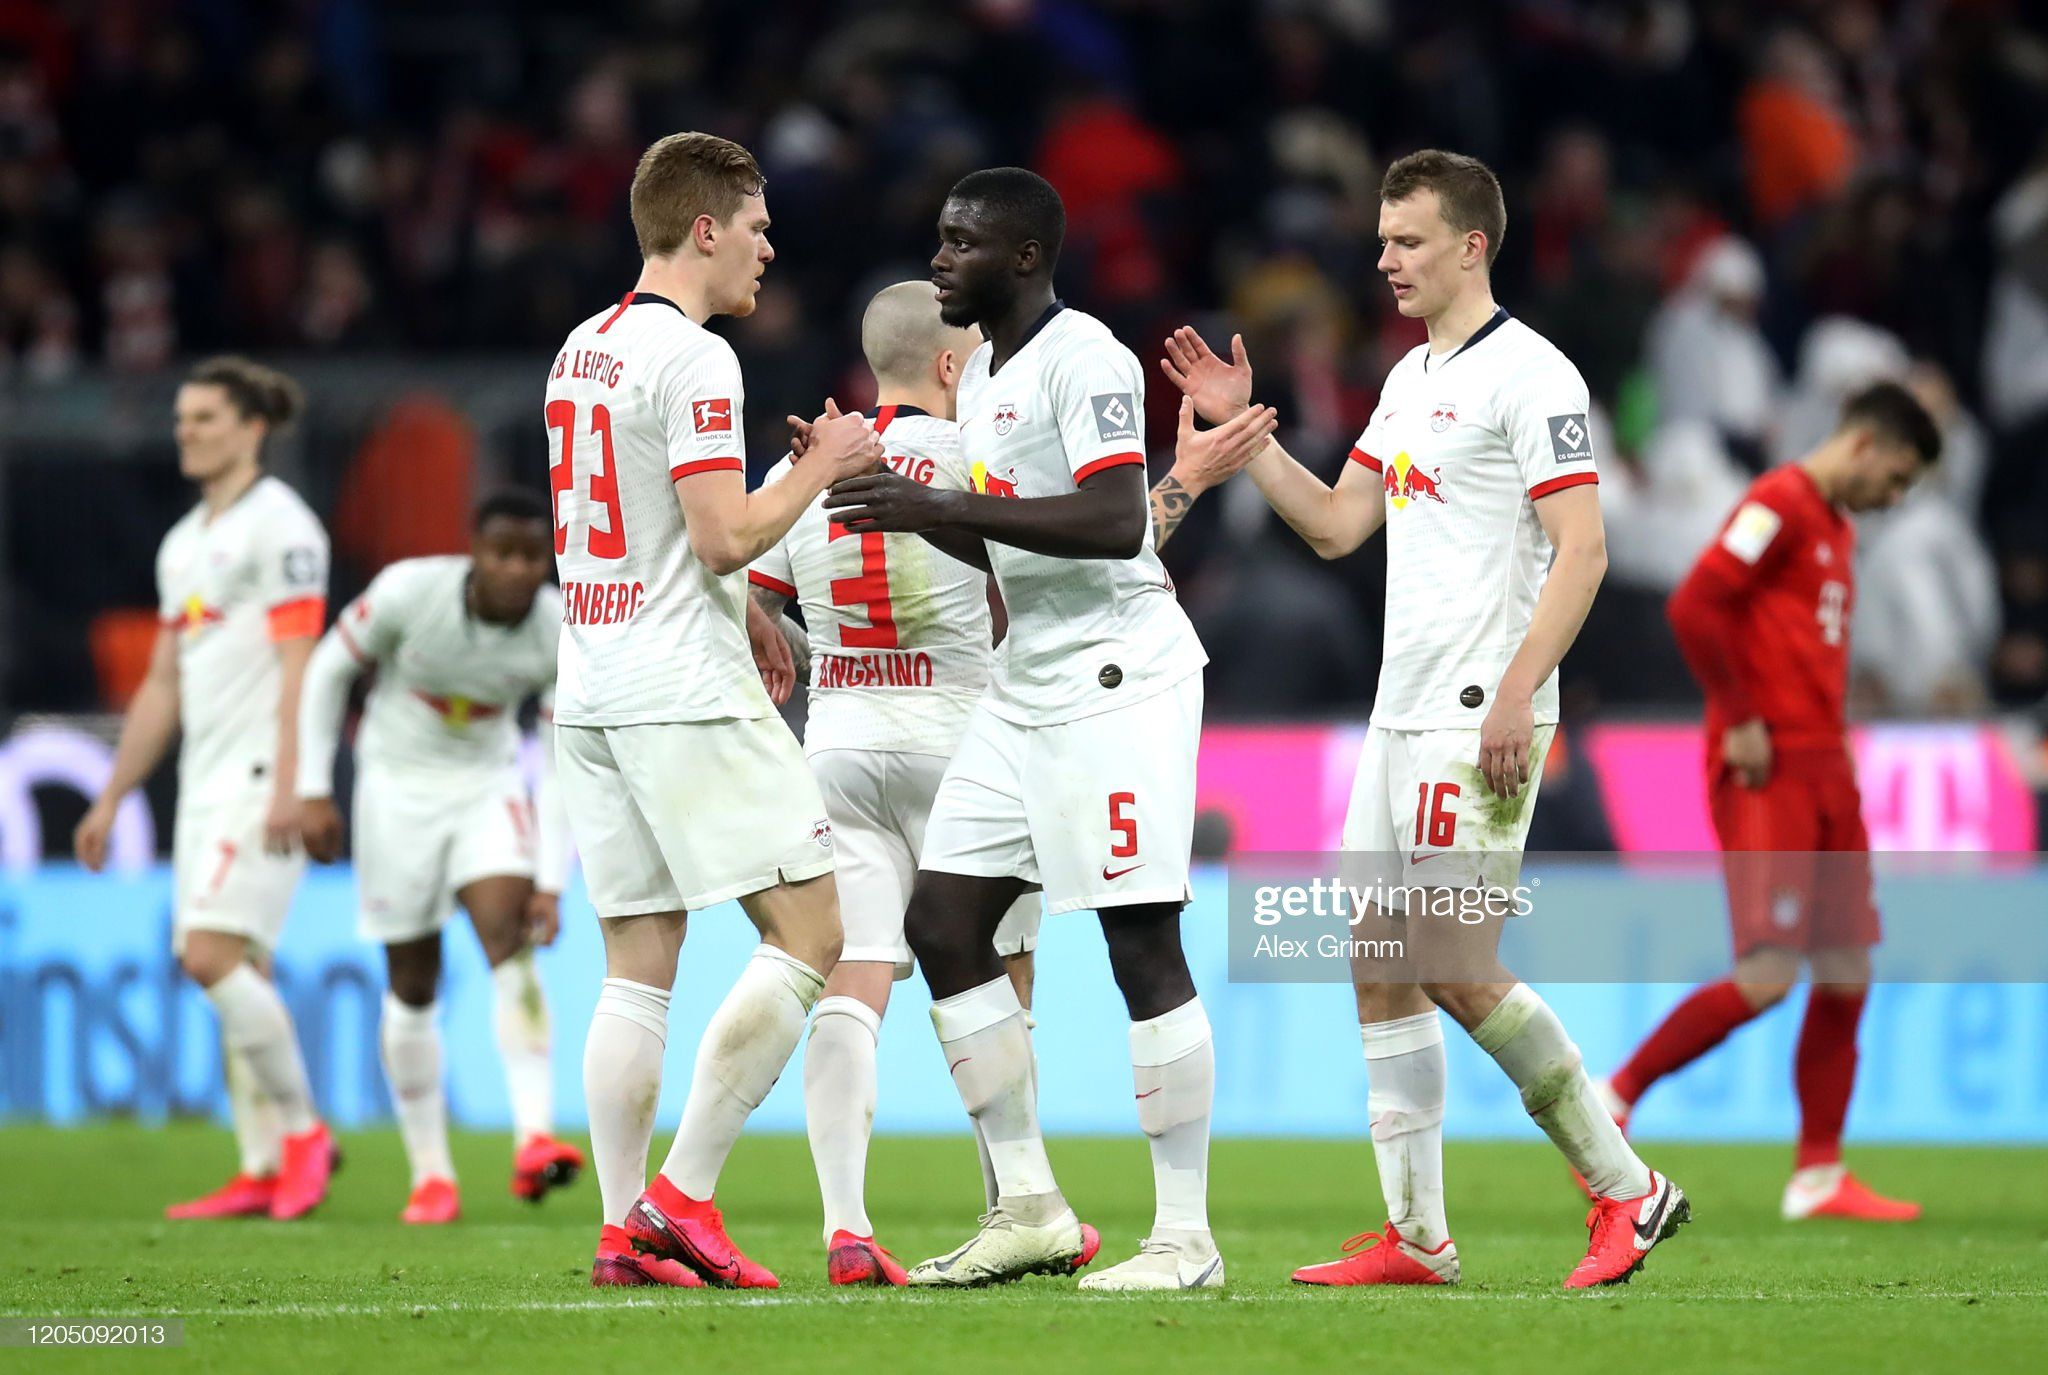 marcel-halstenberg-of-rb-leipzig-shakes-hands-with-dayot-upamecano-of-picture-id1205092013?s=2048x2048